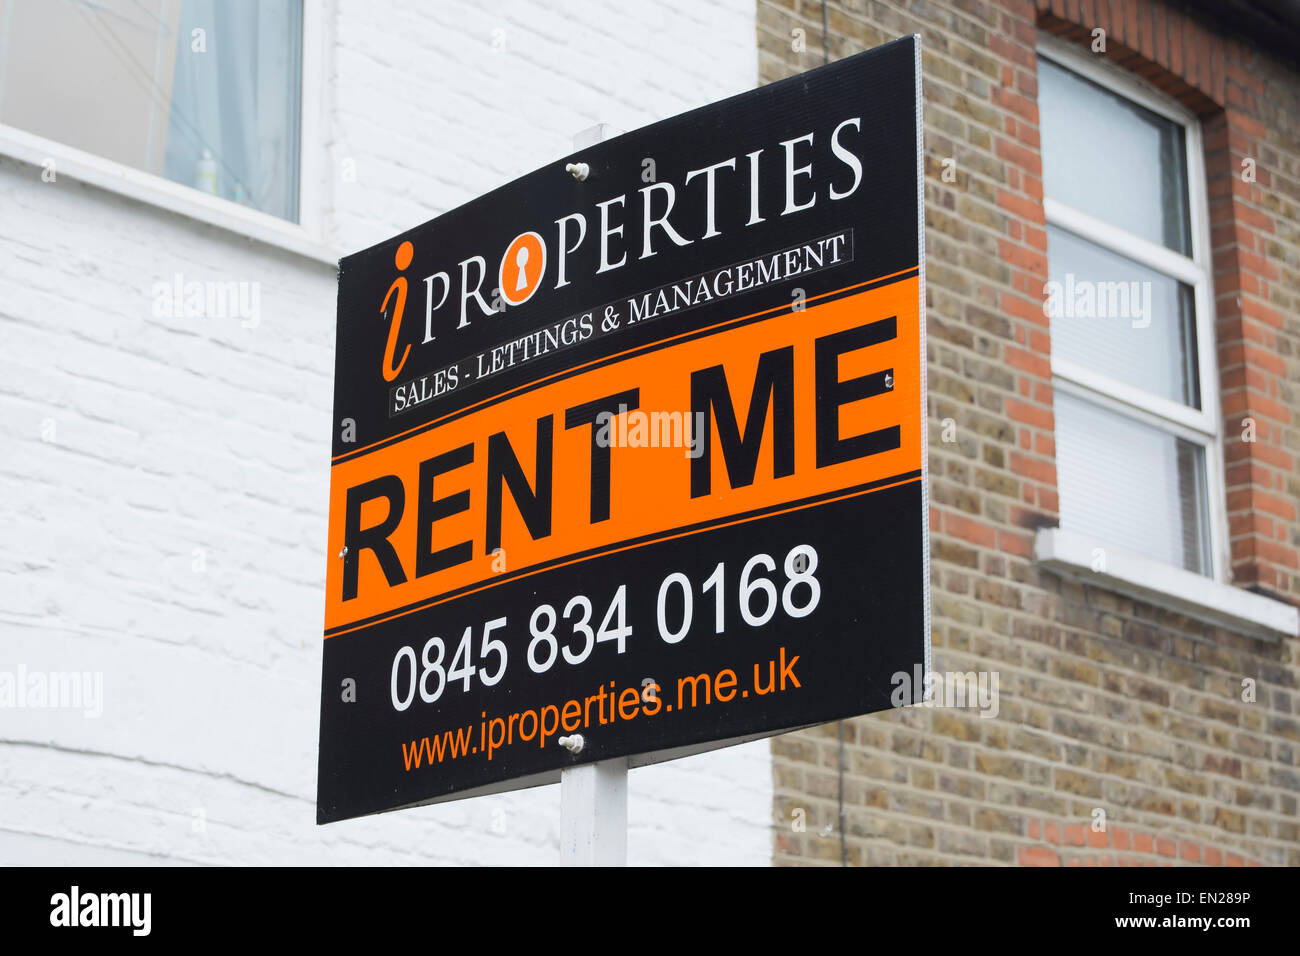 letting agents rent me sign outside a property in kingston upon thames, surrey, england - Stock Image